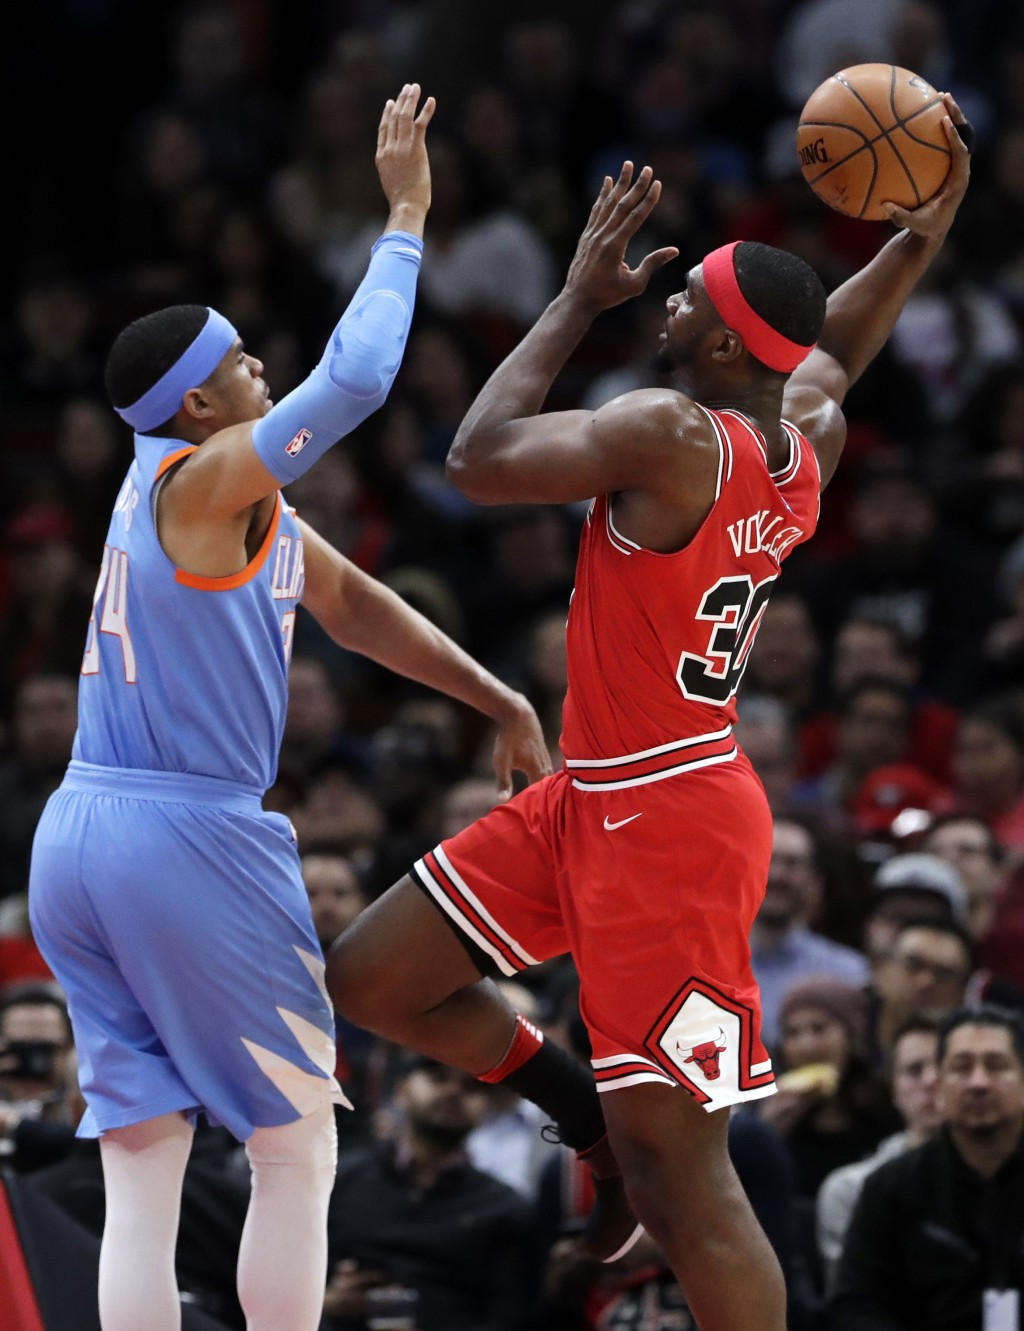 Chicago Bulls forward Noah Vonleh, right, shoots against Los Angeles Clippers forward Tobias Harris during the first half of an NBA basketball game, T